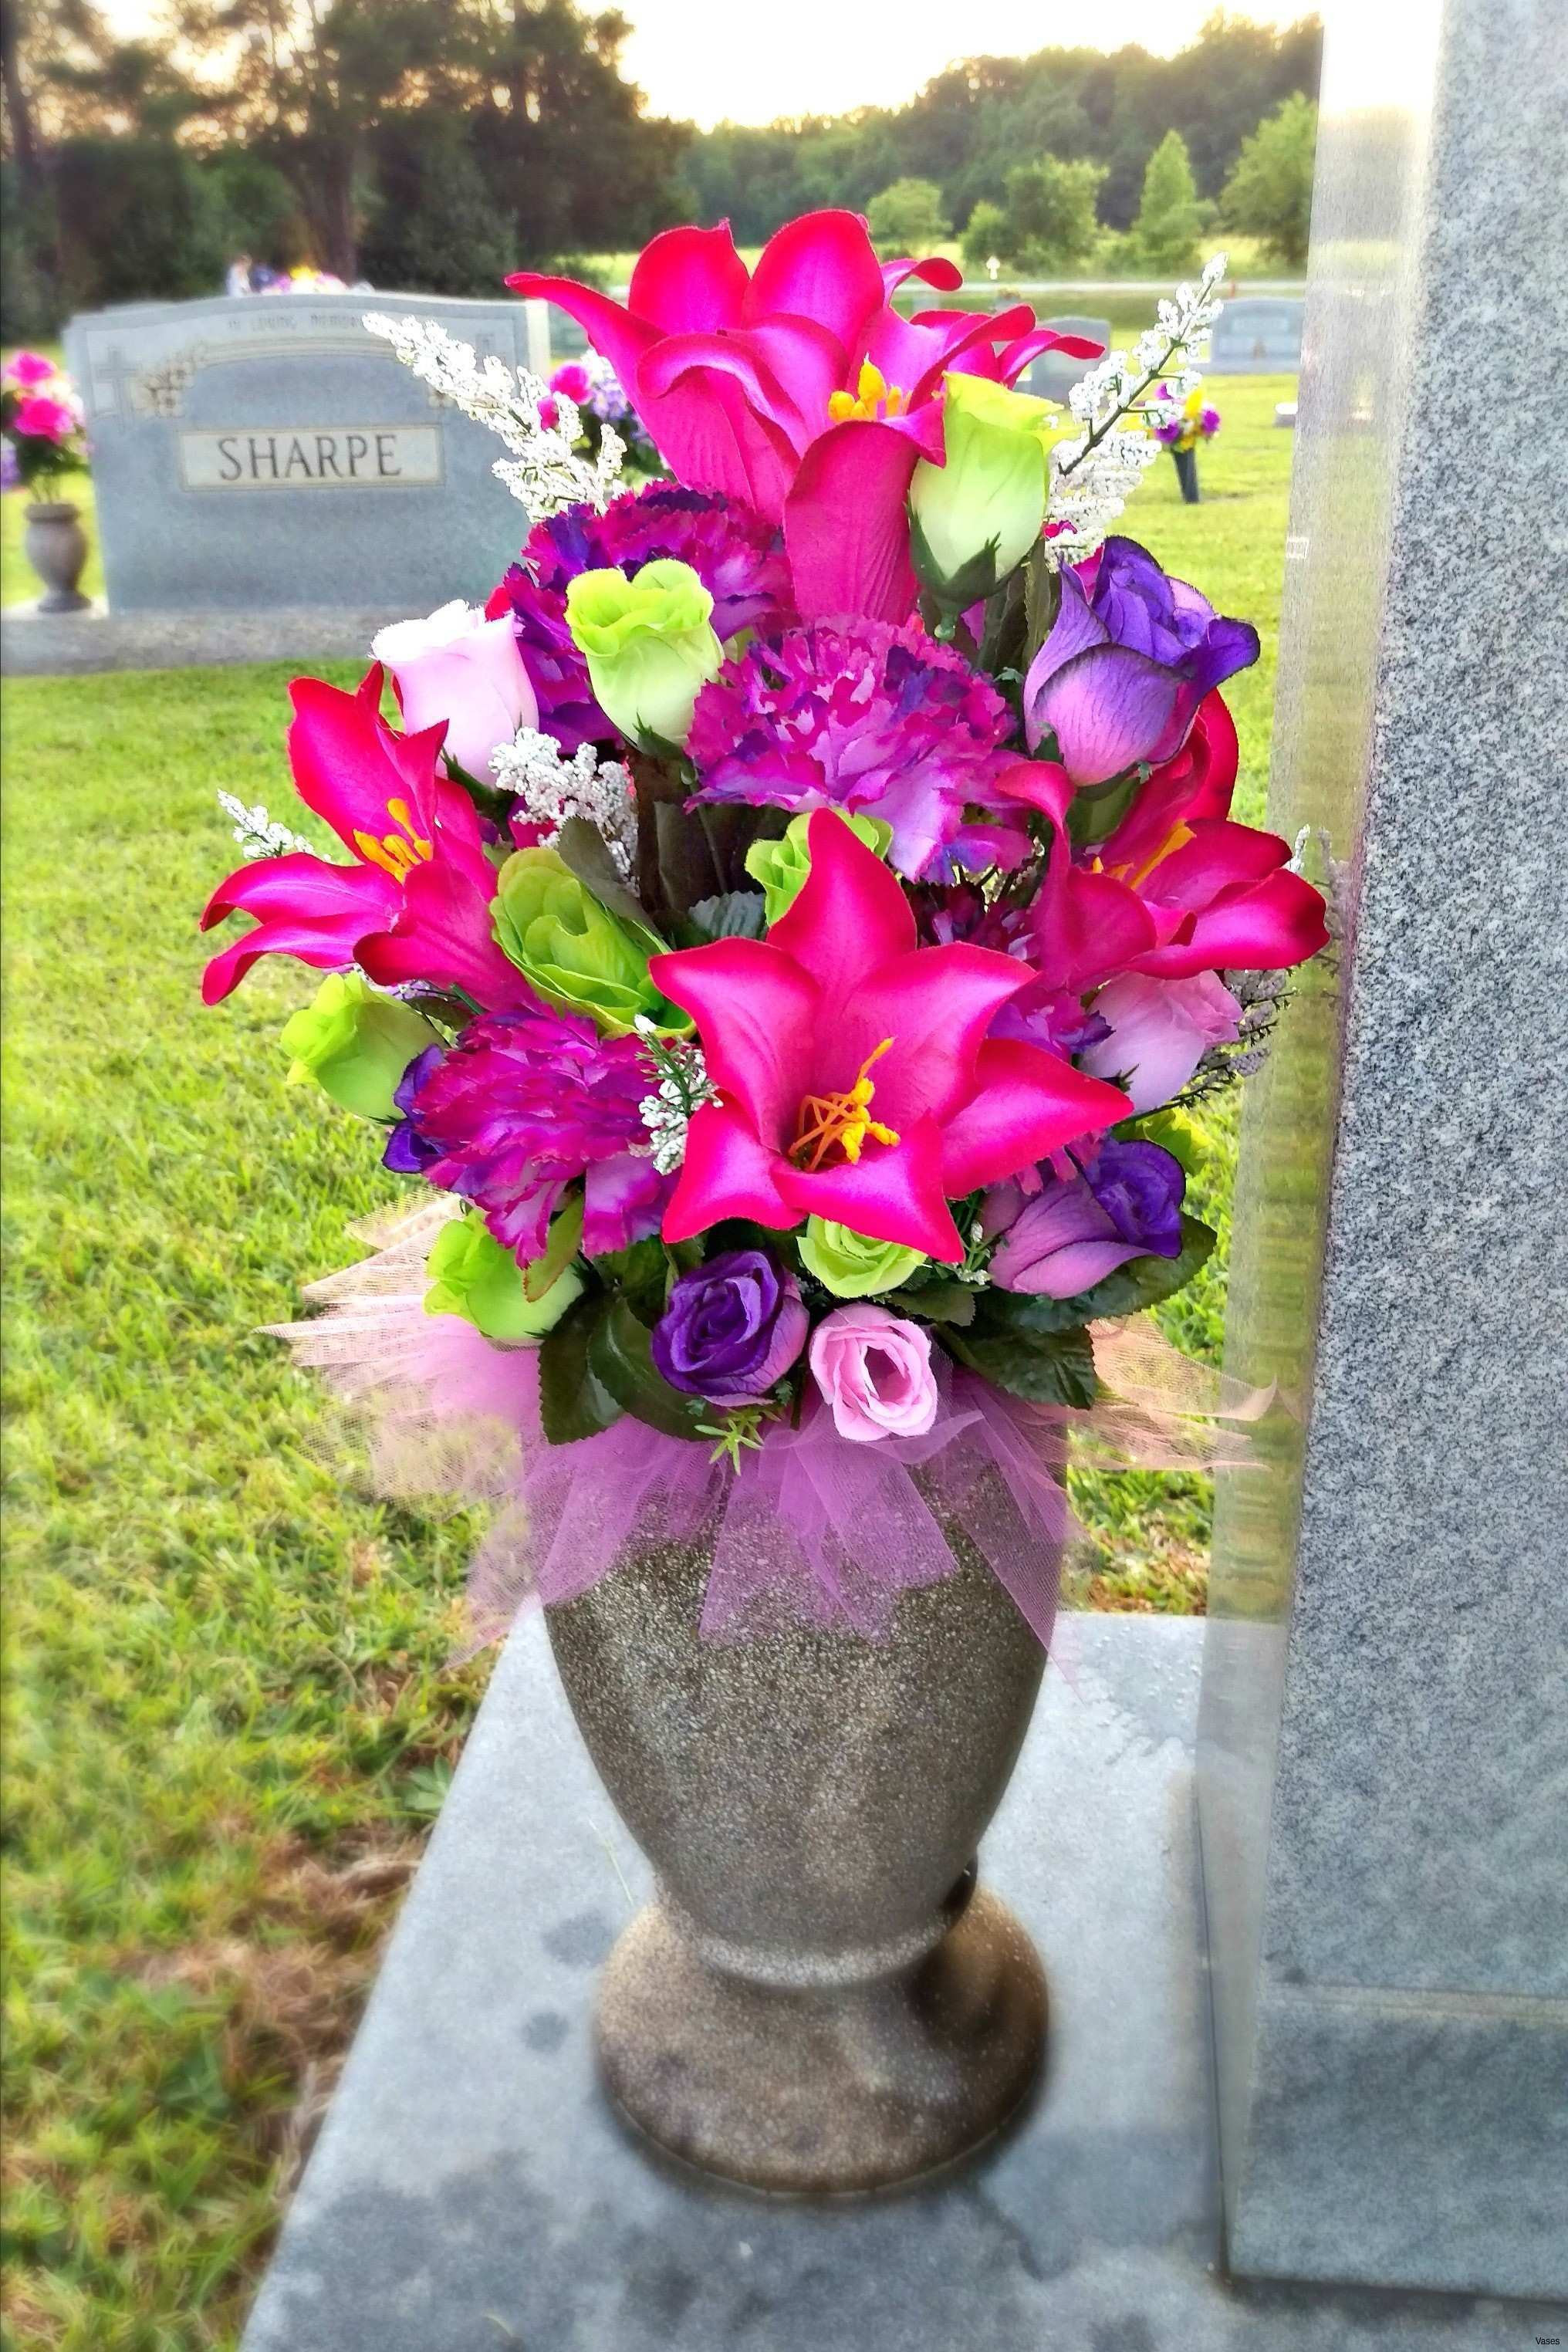 shoe flower vase of cemetery flower holders in ground flowers healthy with regard to rose bushes best of vases grave flower vase cemetery informationi 0d in ground holders